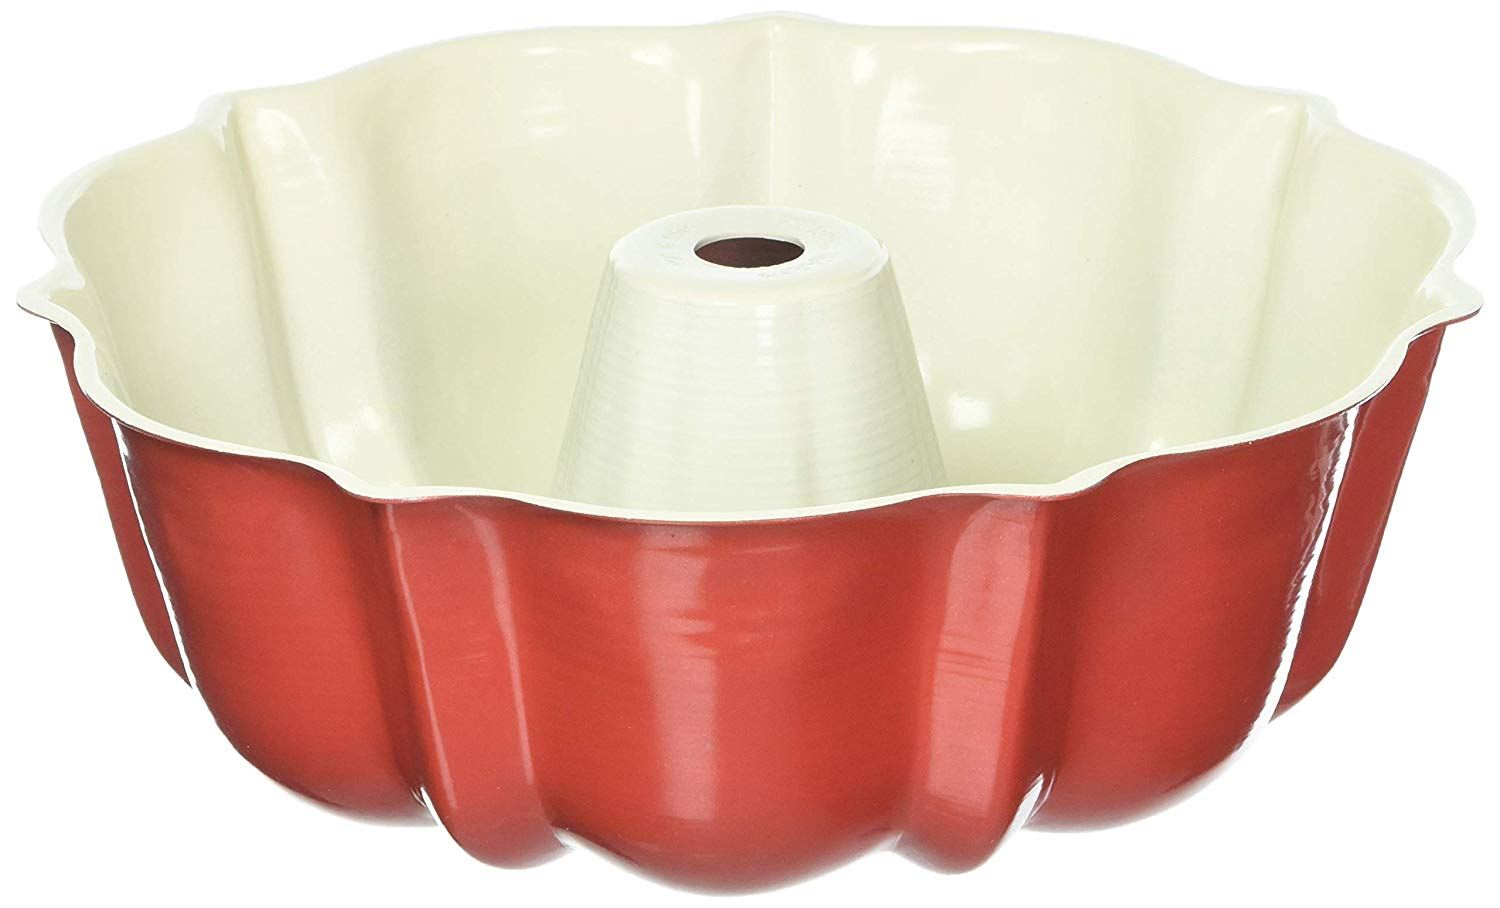 Nordic ware 6-cup bundt pan, multicolor